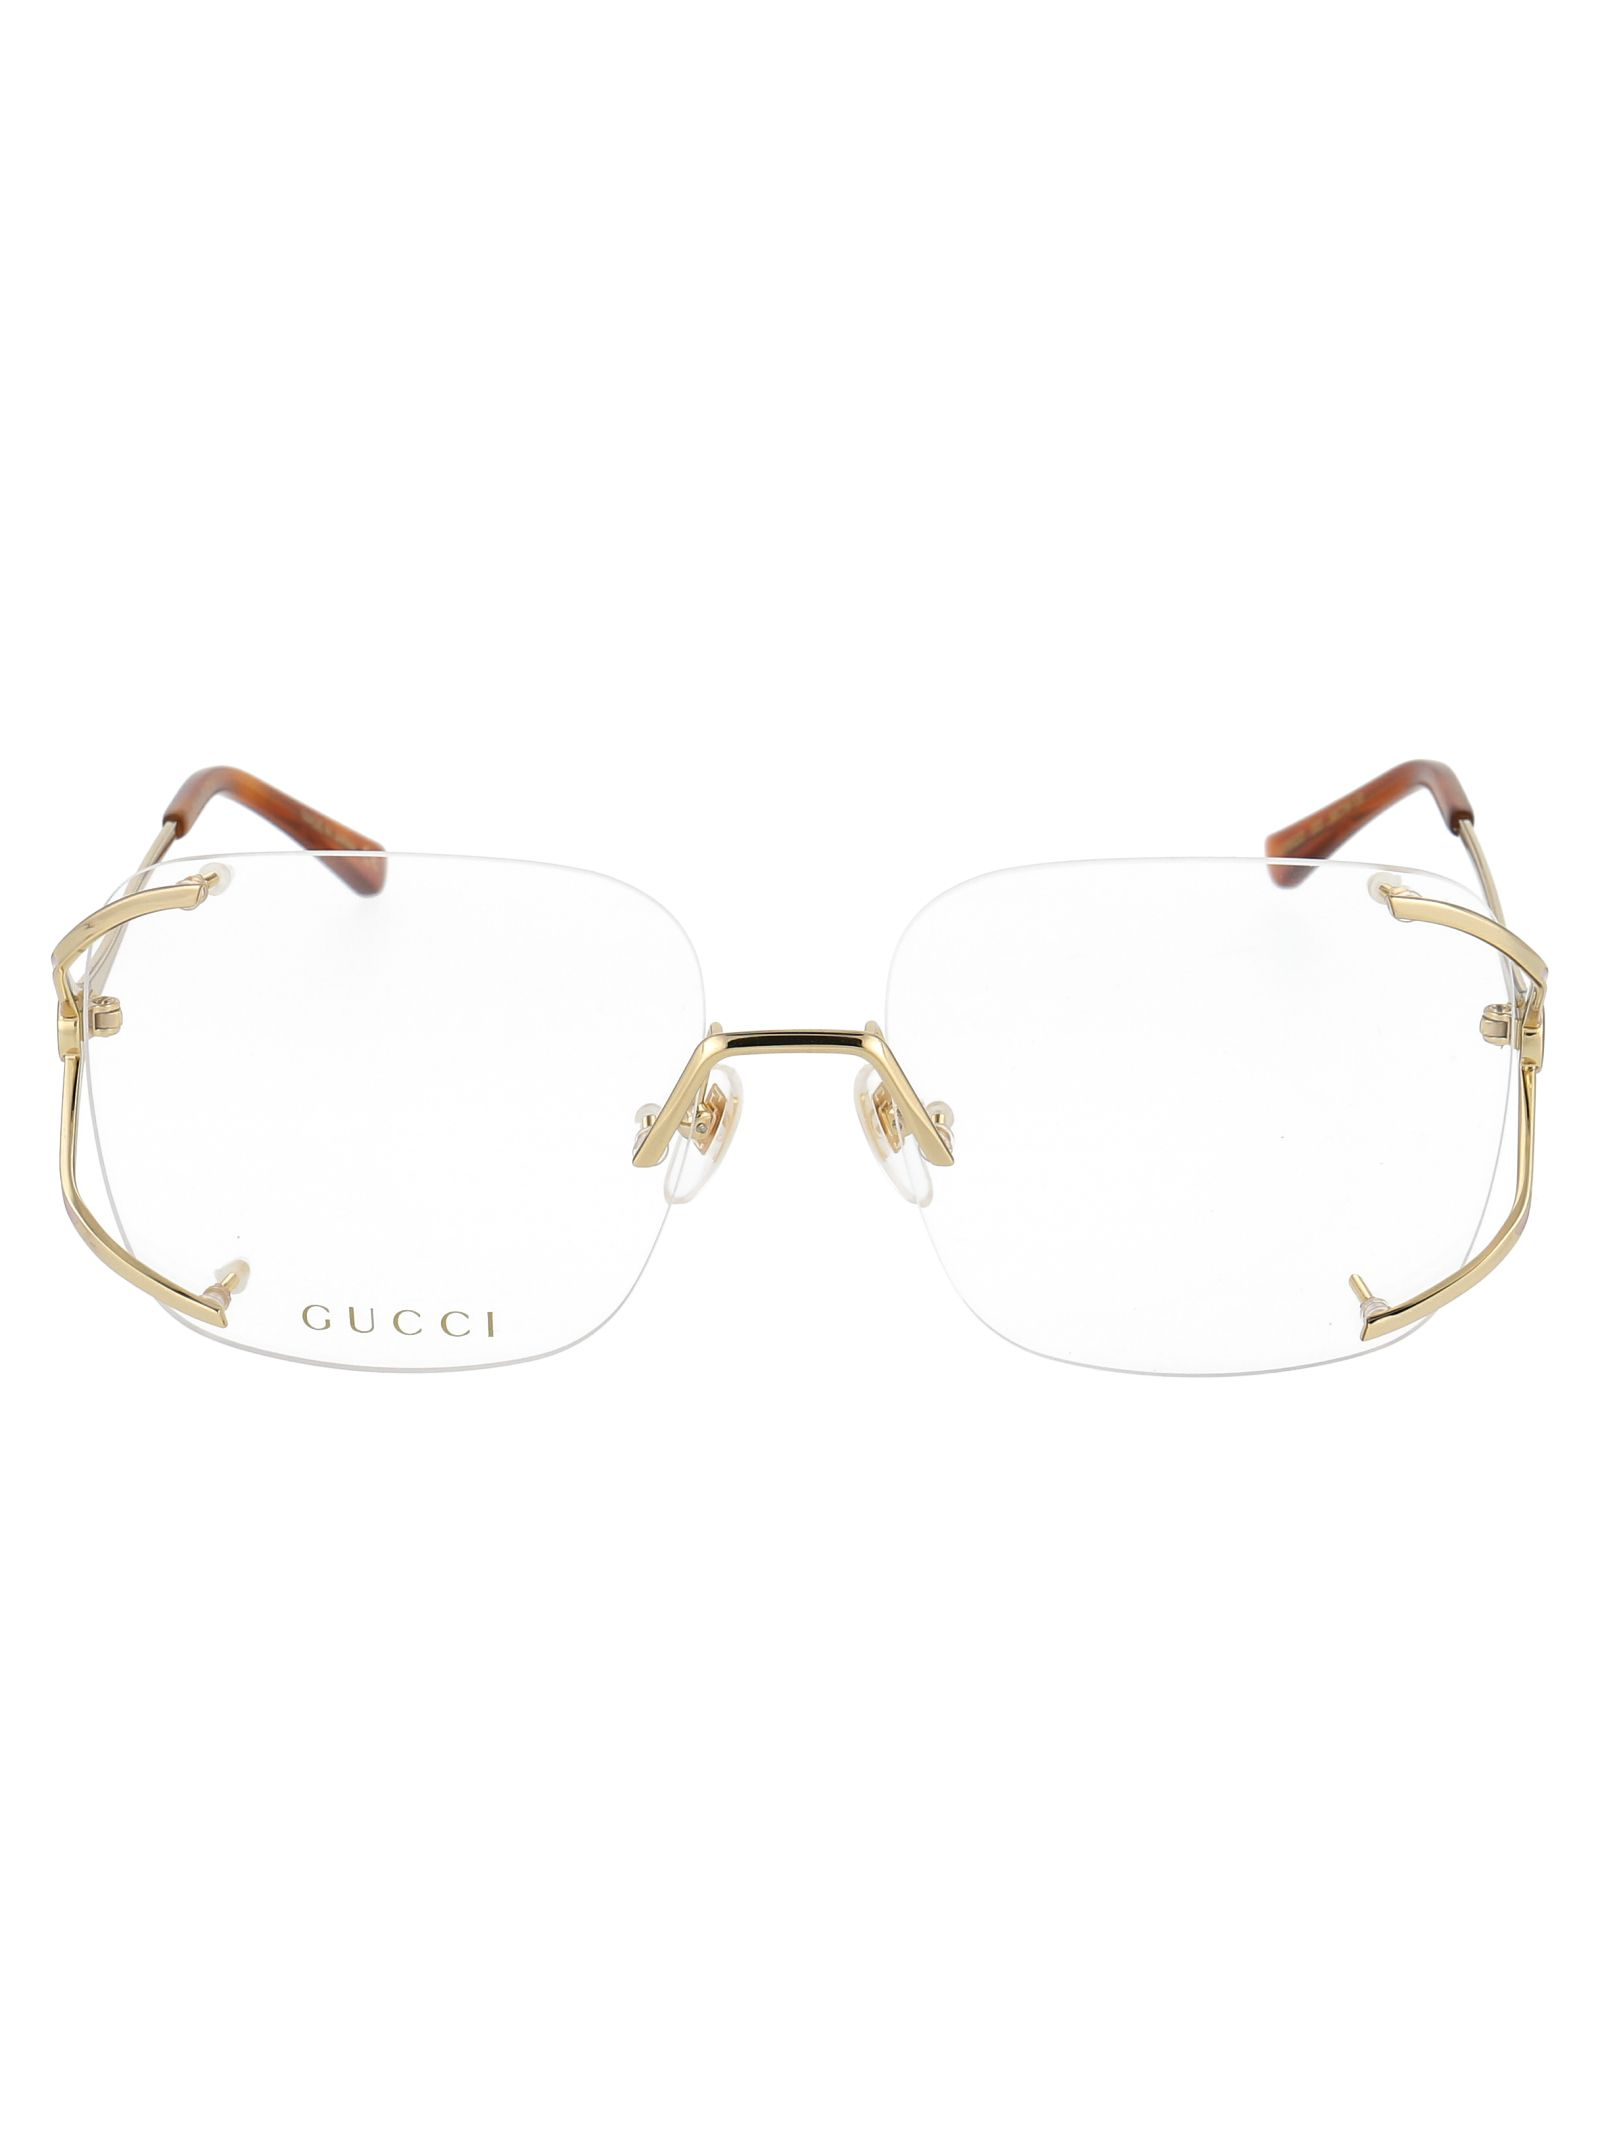 GUCCI GUCCI WOMEN'S BLUE METAL GLASSES